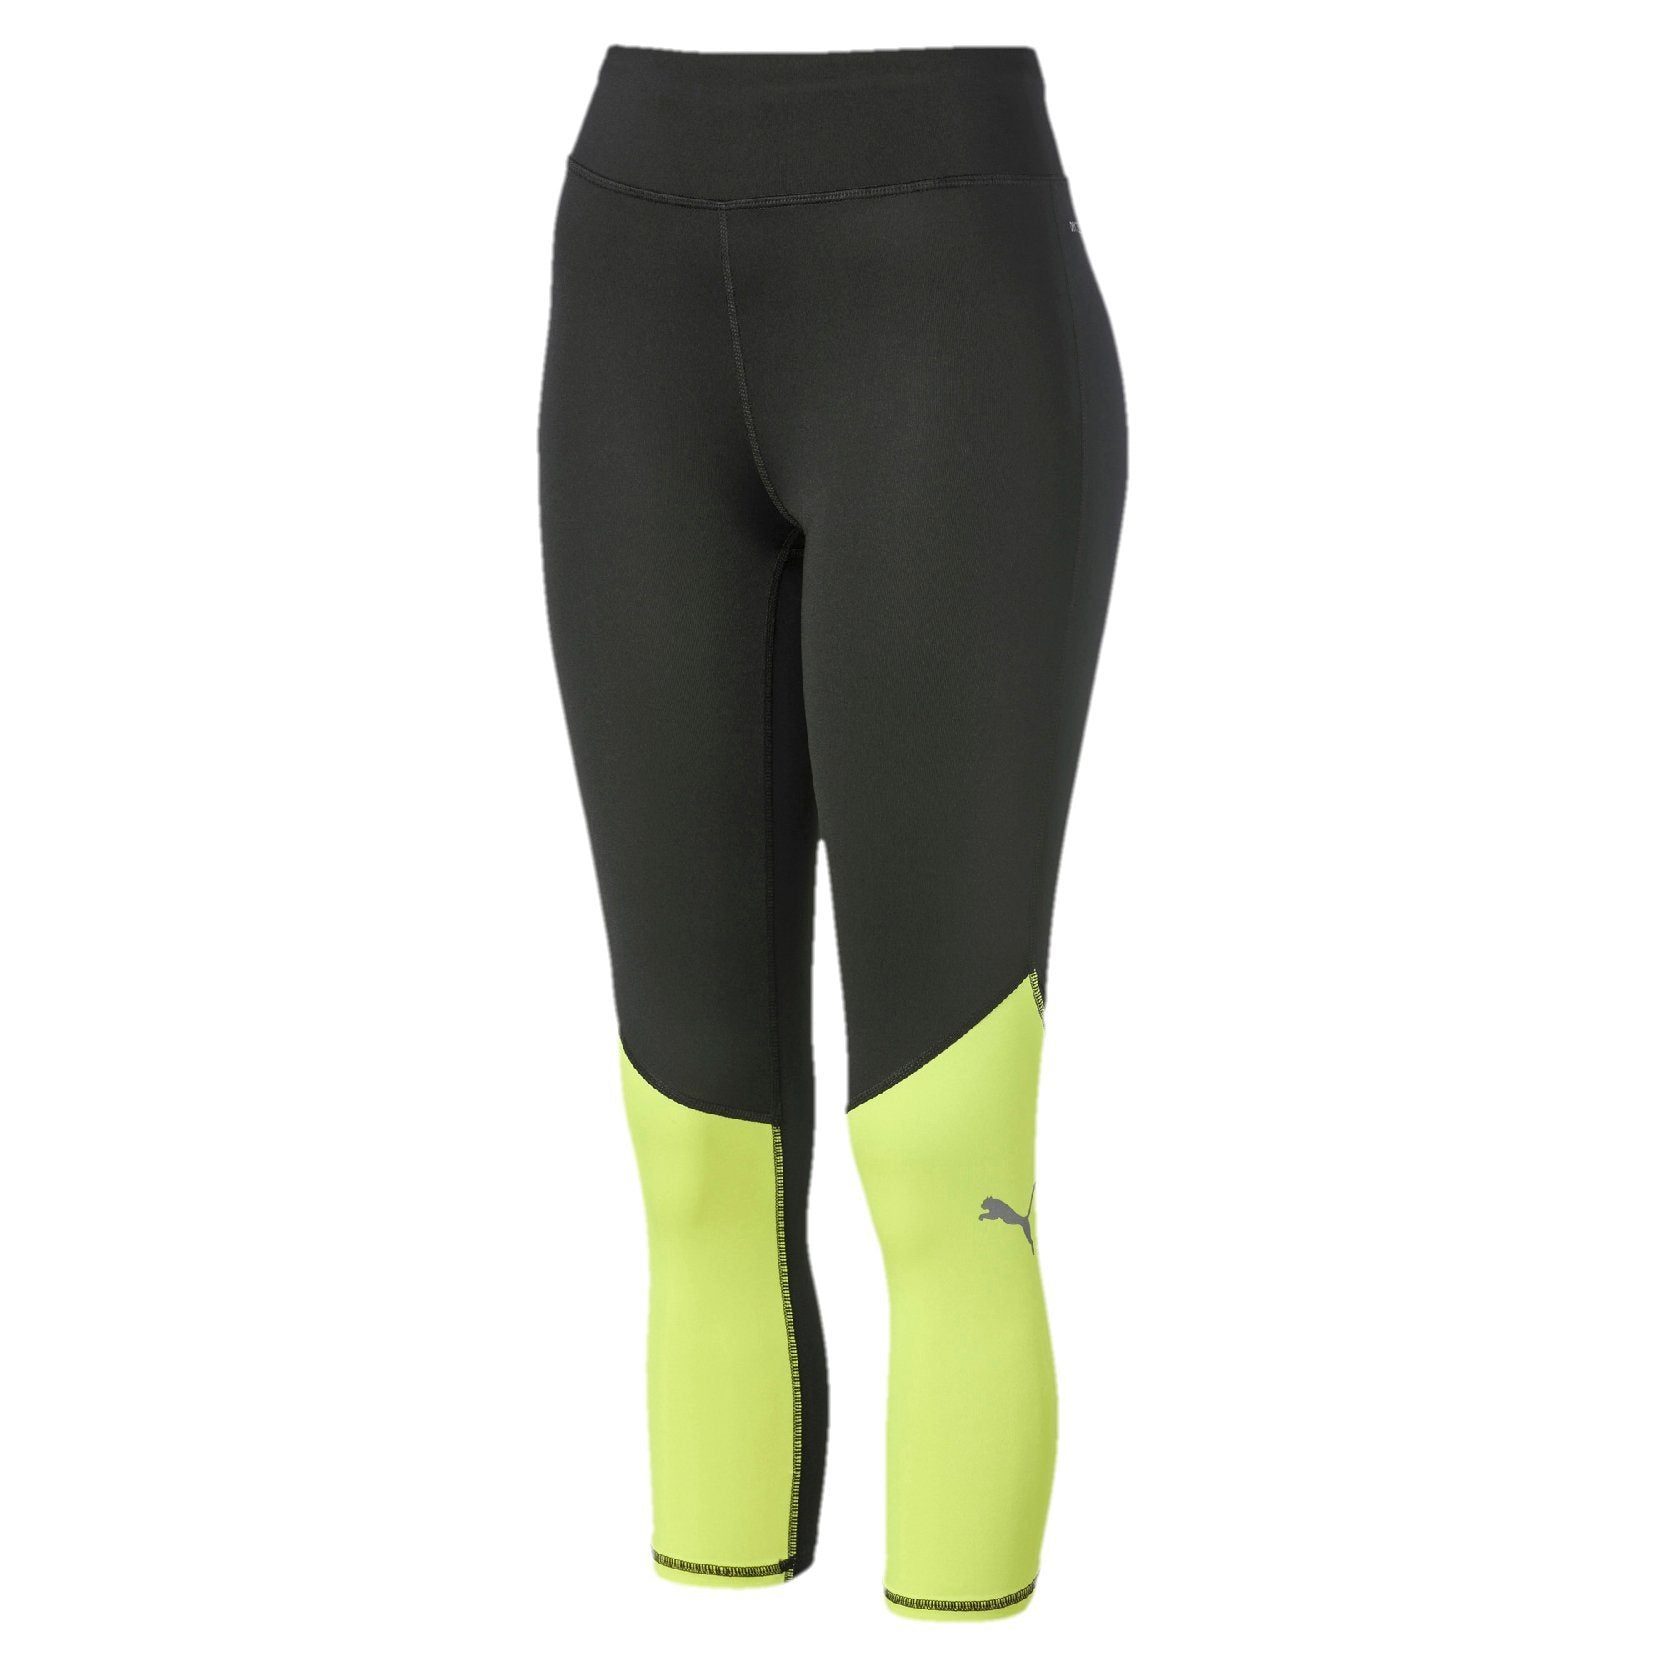 Puma Ignite 3 4 Tight (Womens) Apparel - Women Puma